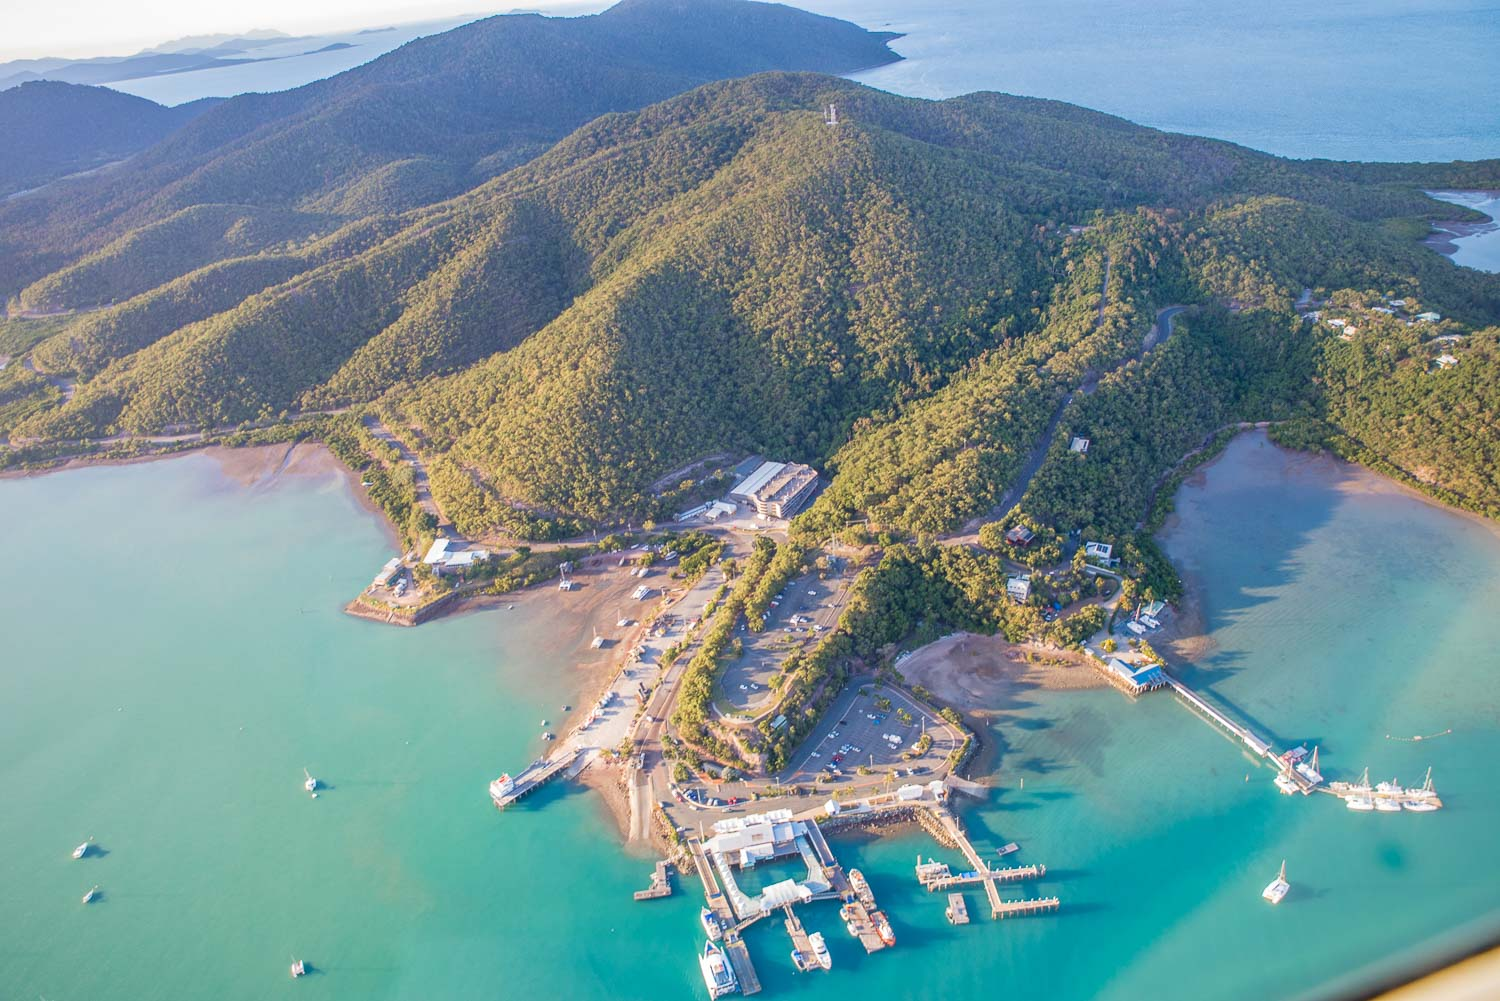 Things To Do in Airlie Beach